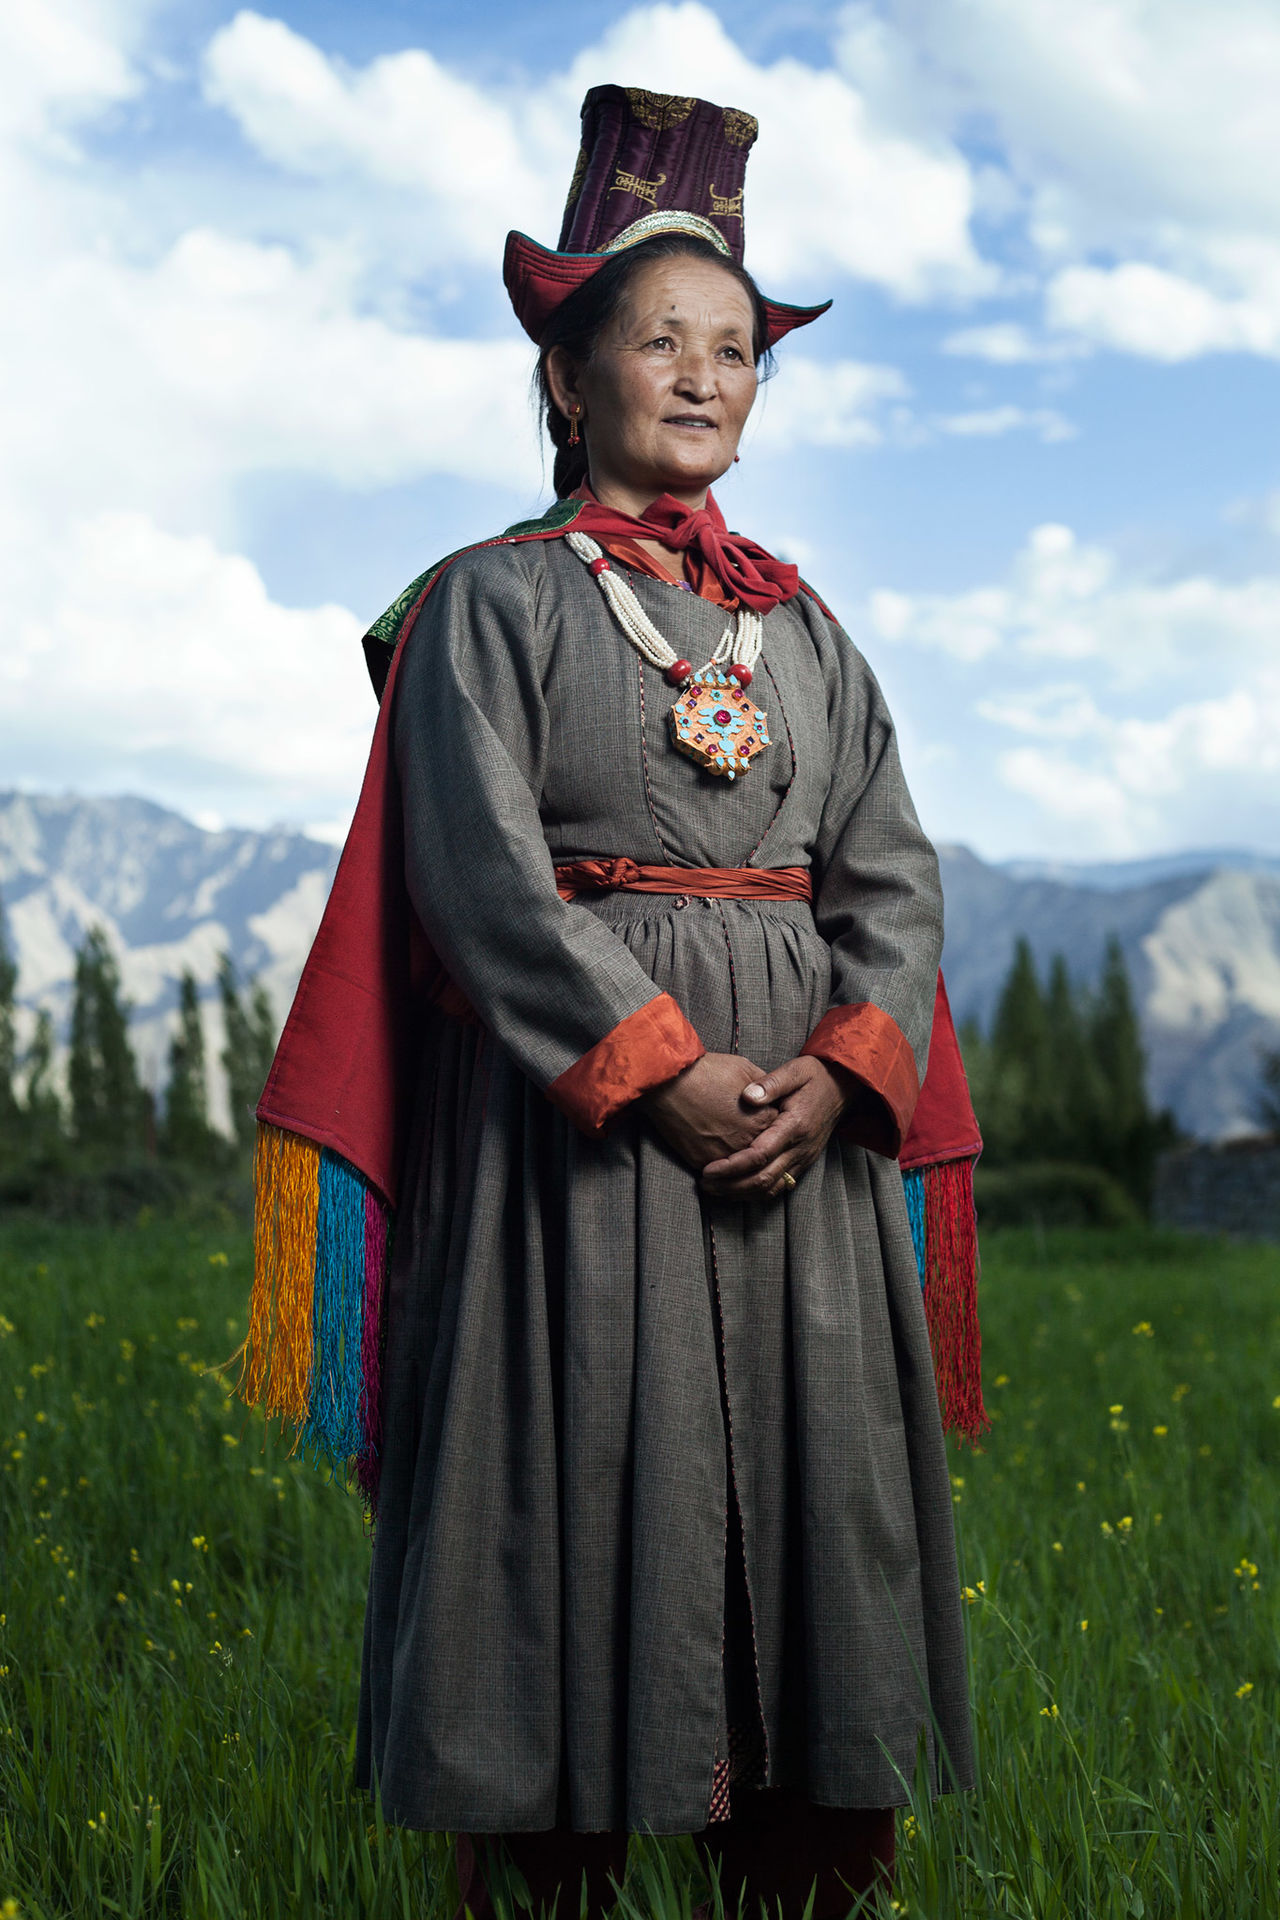 Ladakhi women Traditional clothing Adult one person outdoors royalty royal person women around the world scenics PortraitPhotography women Tradition photostory indiapictures India Himalayas Portrait of a Woman lifestyles The Week On Eyem beauty in Nature EyeEm arts culture and entertainment strobist EyeEm Best Shots Travel Beautiful people women around the world The Portraitist - 2017 EyeEm Awards